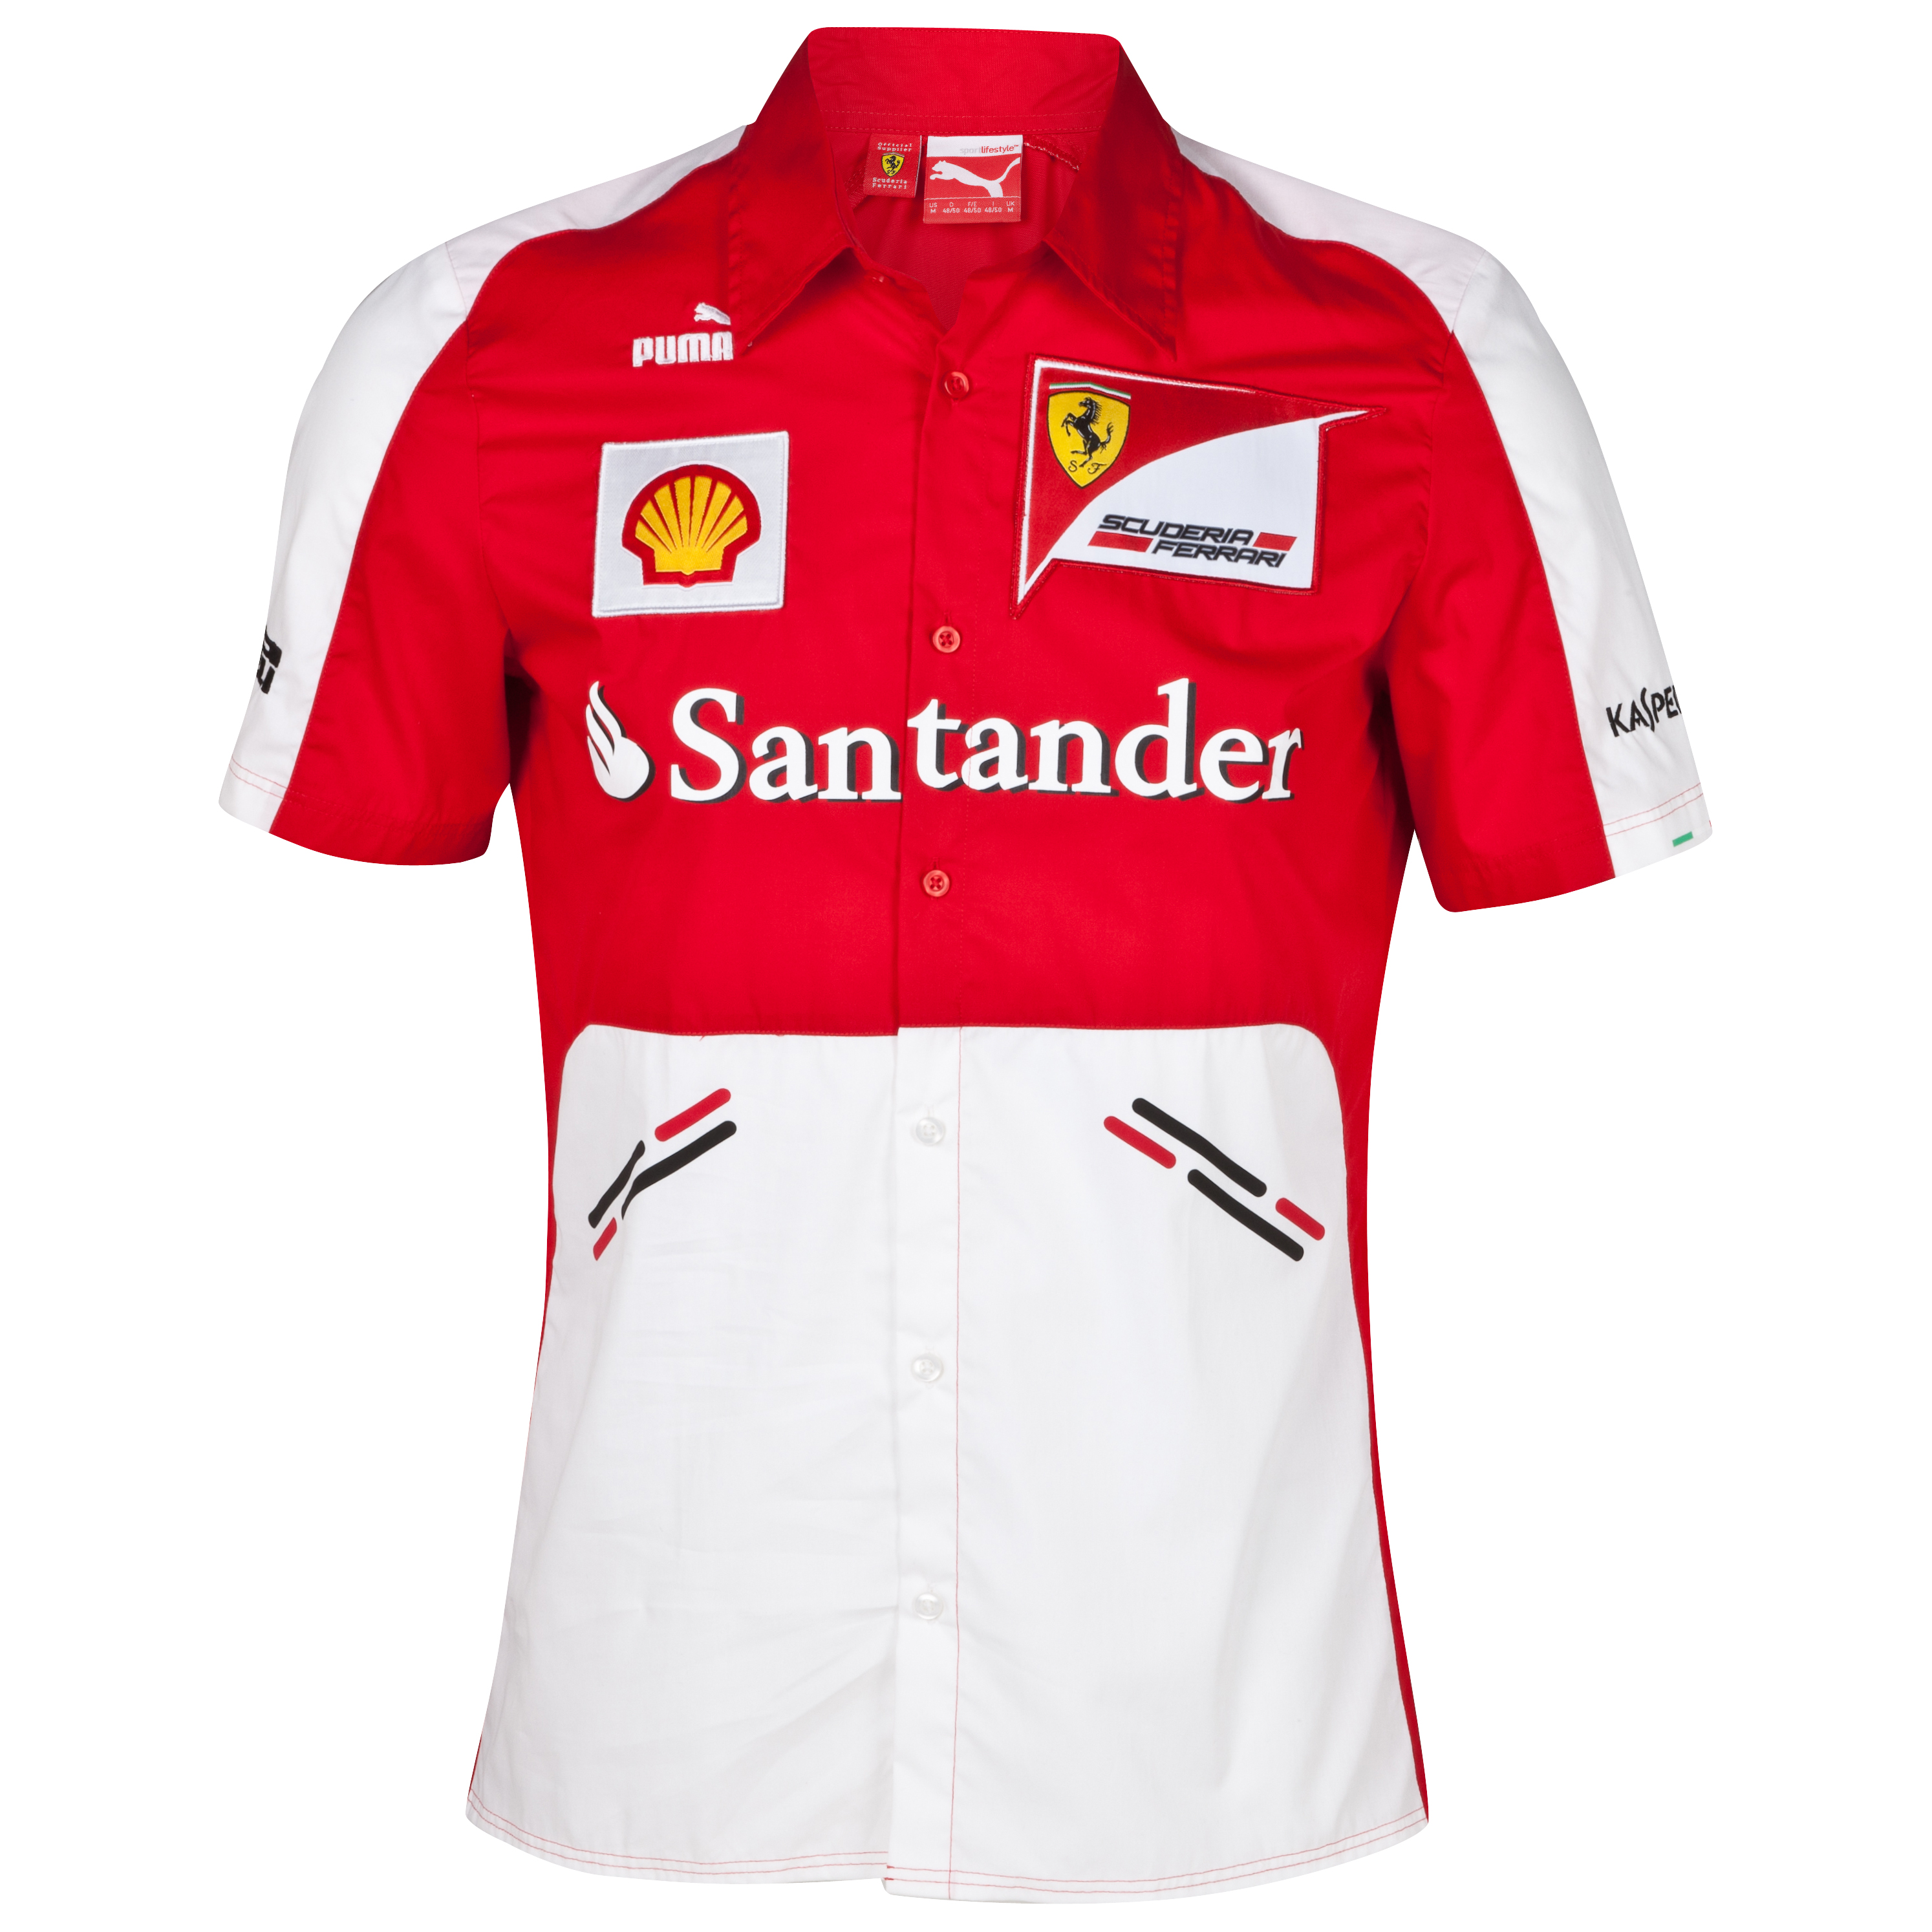 Scuderia Ferrari 2013 Team Shirt